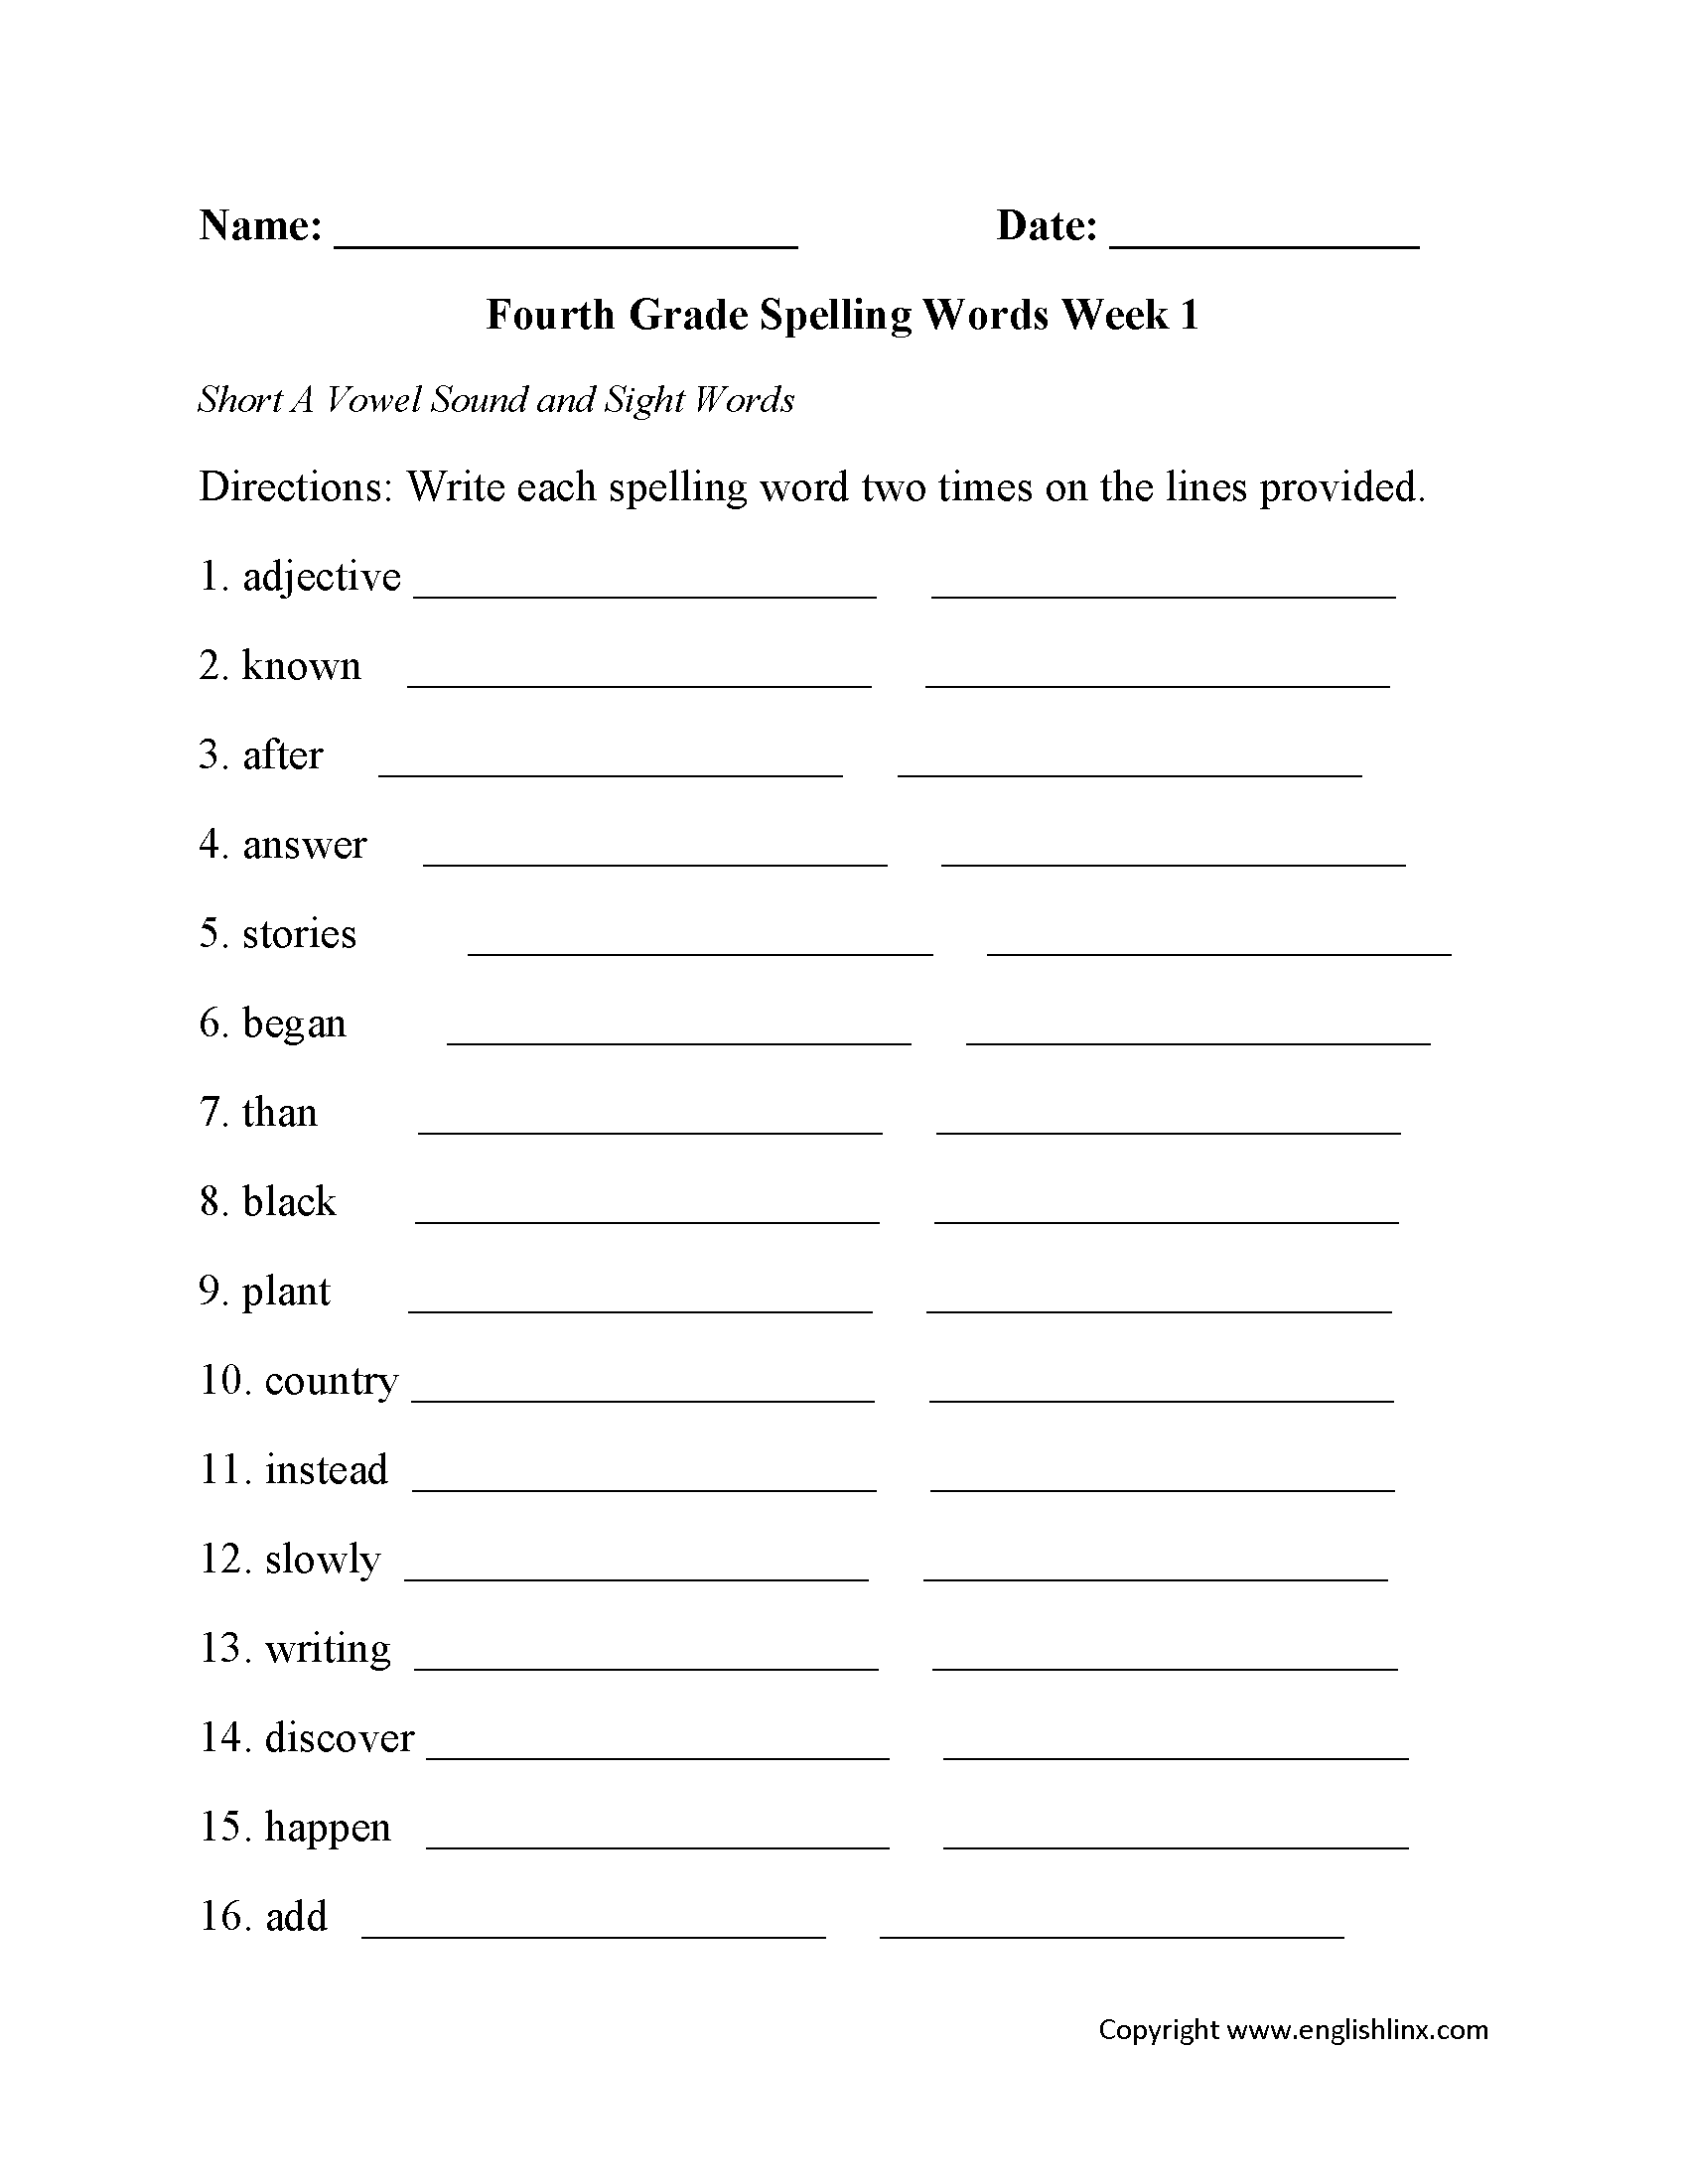 Printables Of Spelling Worksheets Year 4